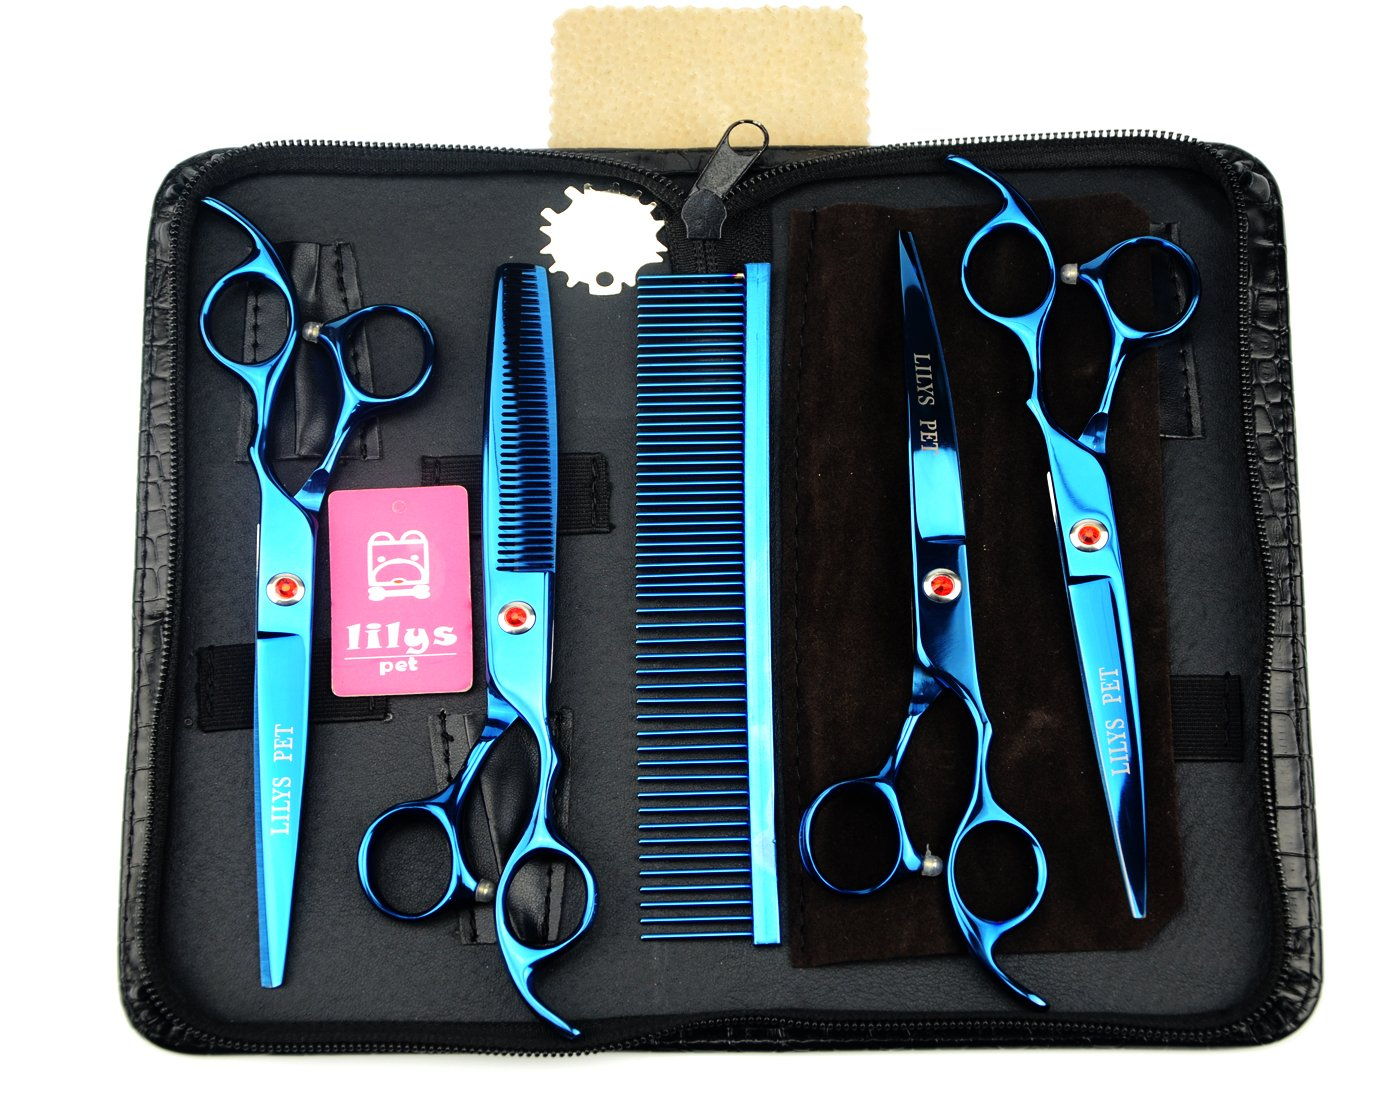 bluee LILYS PET 7  Professional blueE PET DOG Grooming scissors suit Cutting&Curved&Thinning shears(blueE)